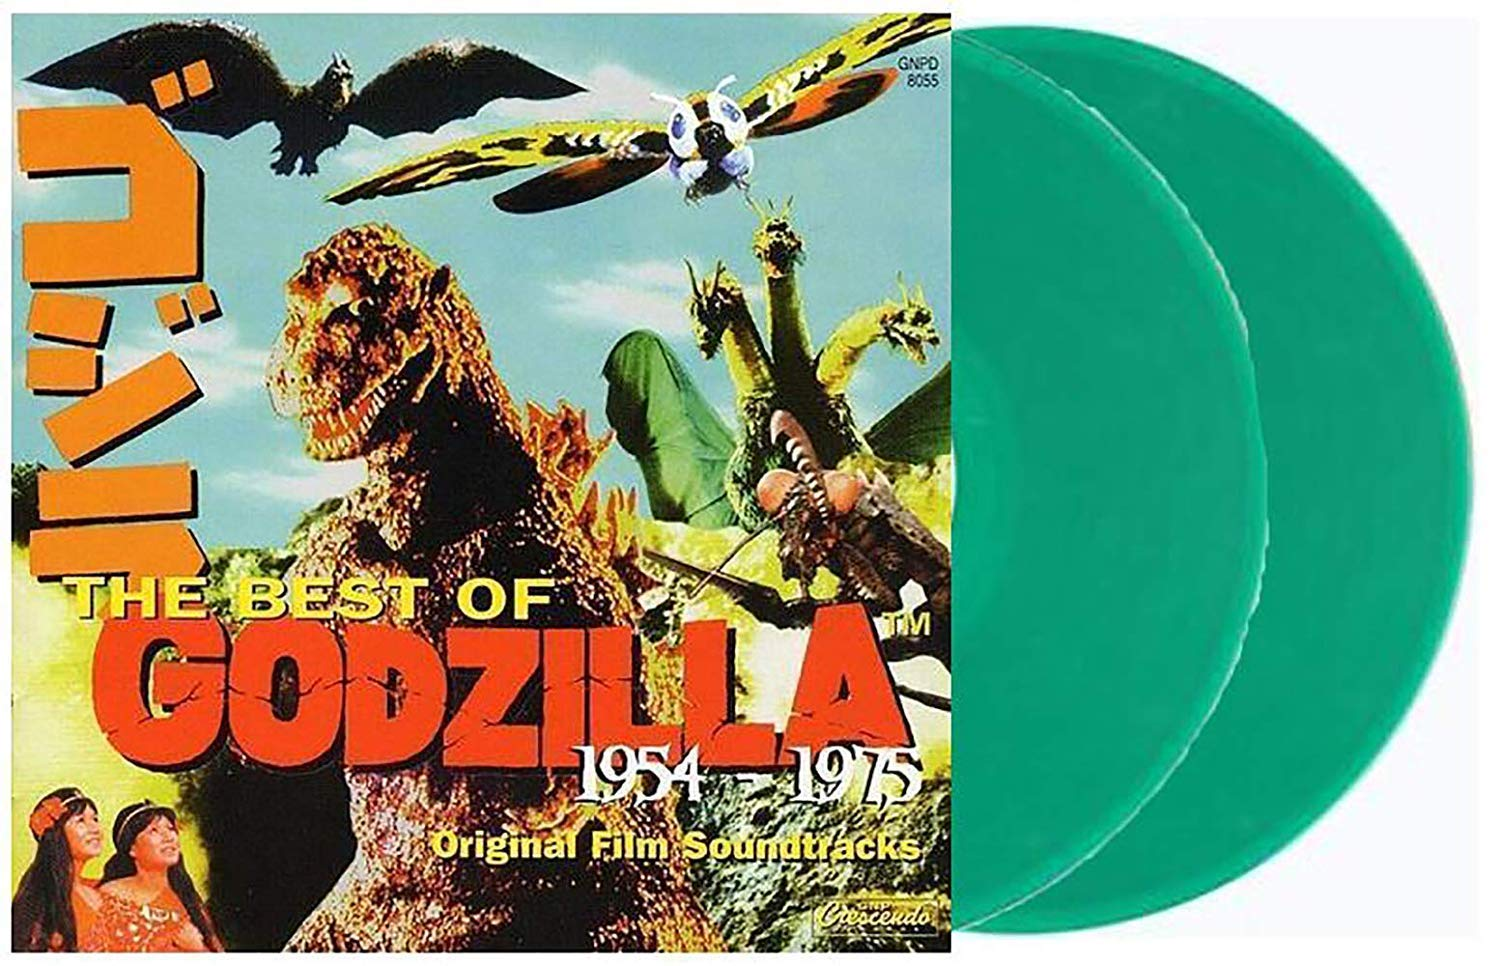 The Best Of Godzilla 1954-1975 - Exclusive Limited Edition Translucent Green 2xLP Vinyl (#/1000) [Condition-VG+NM]